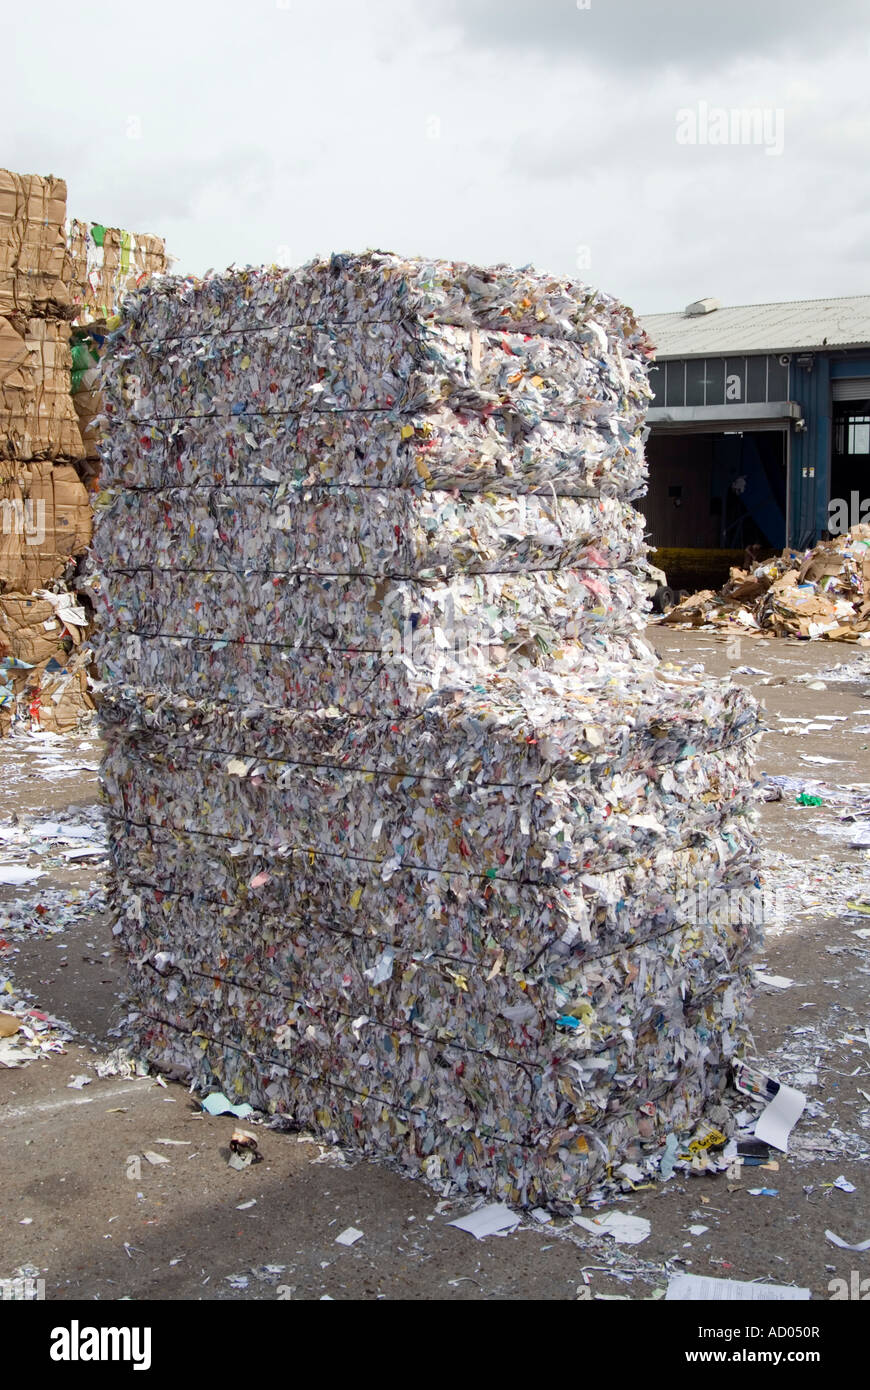 Bale of shredded paper for recycling England UK - Stock Image